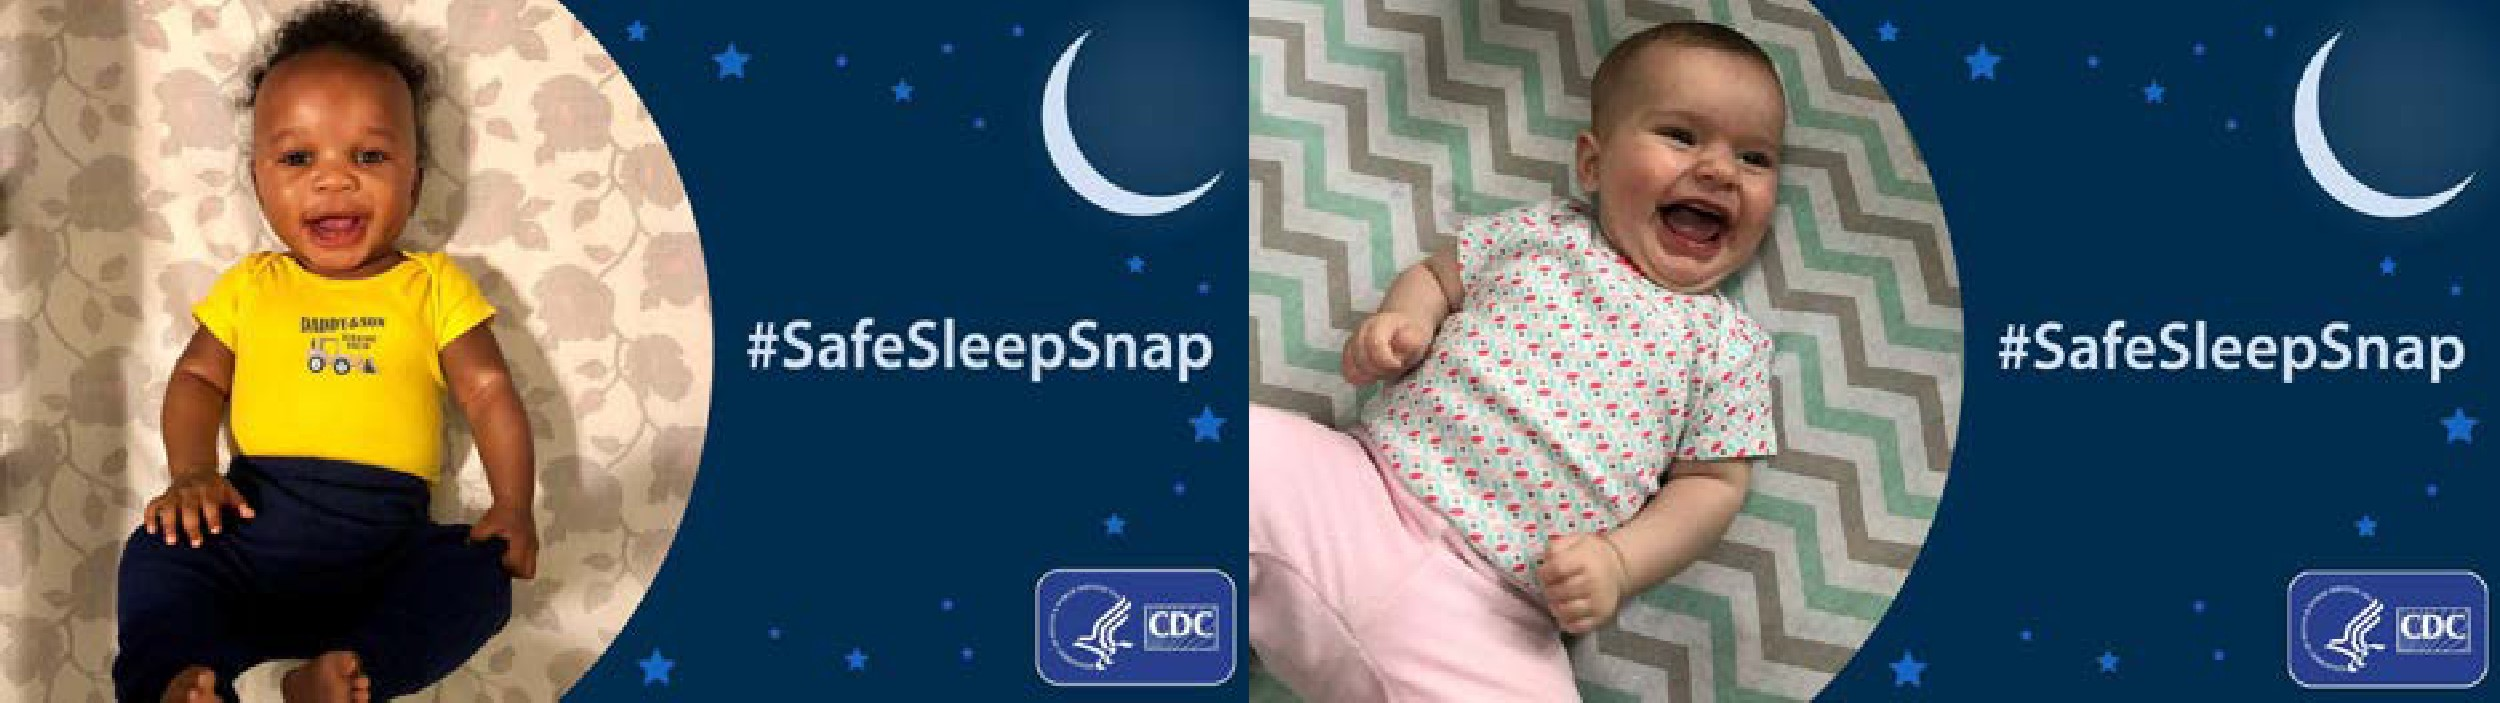 Image 3: A baby girl laying on her back and smiling, next to an illustration of a moon and stars, with the words #SafeSleepSnap, and the CDC logo Image 4: A baby girl laying on her back and laughing, next to an illustration of a moon and stars, with the words #SafeSleepSnap, and the CDC logo.